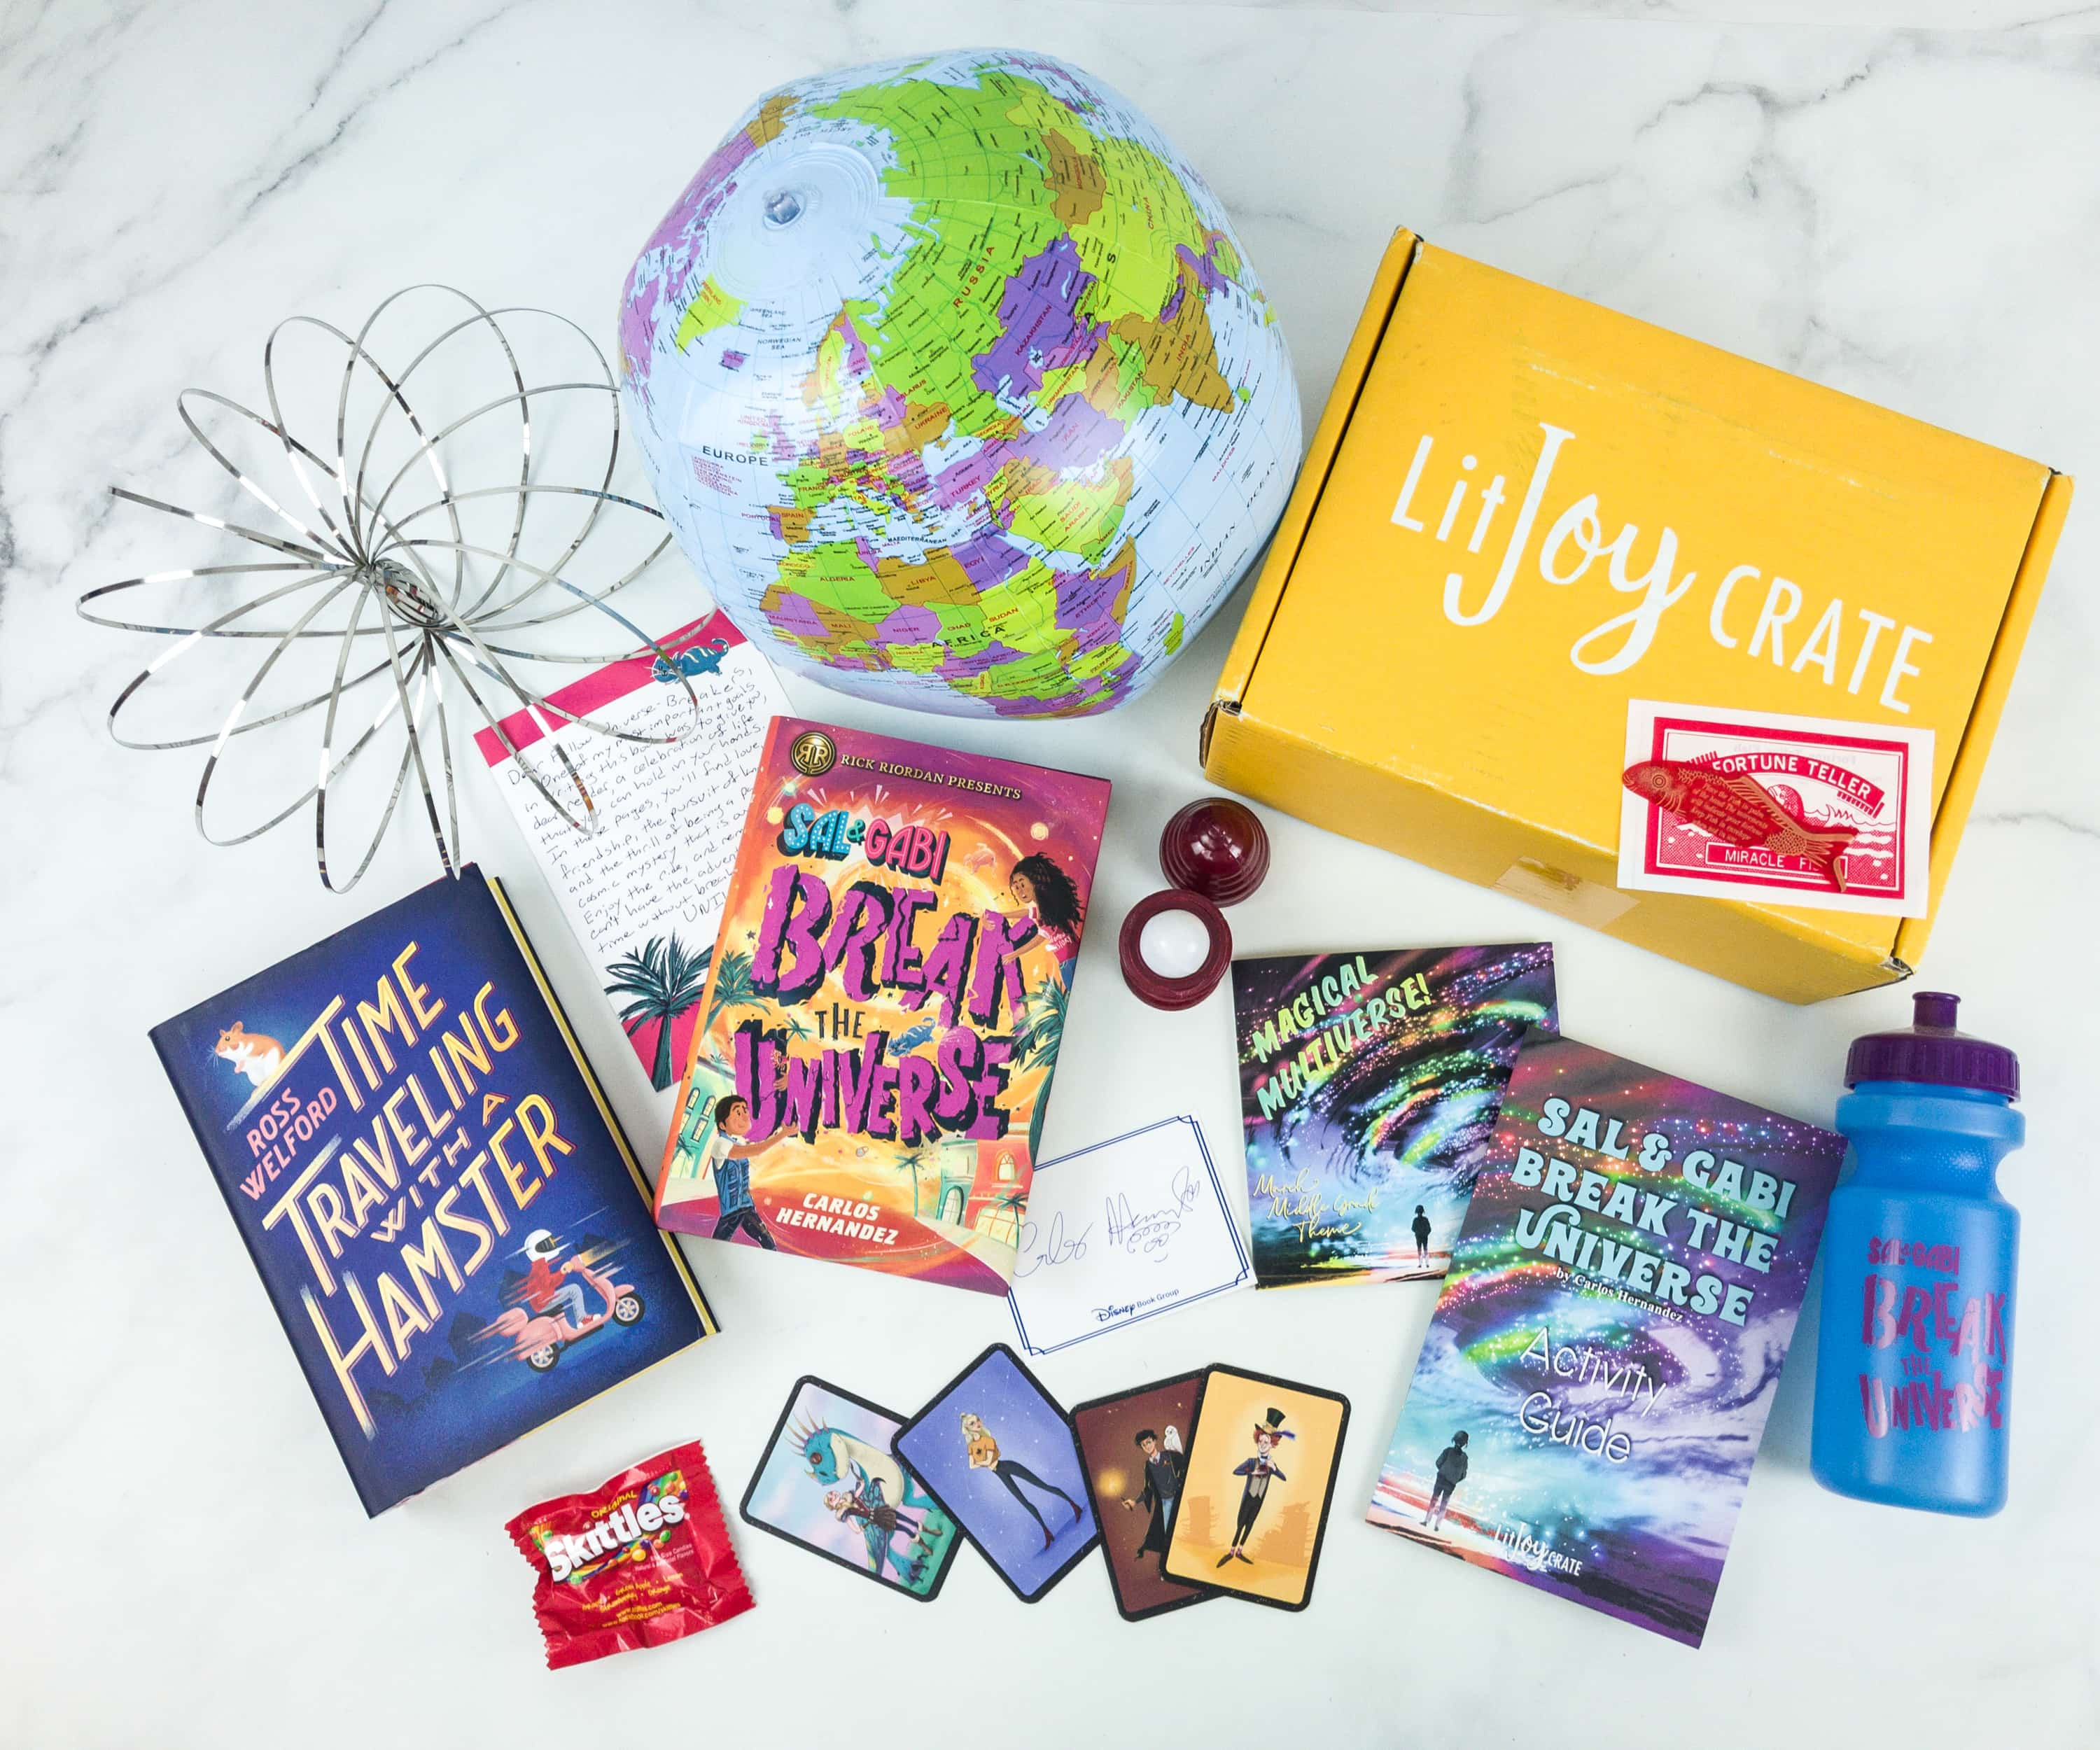 LitJoy Crate Spring 2019 Middle Grade Crate Subscription Box Review & Coupon